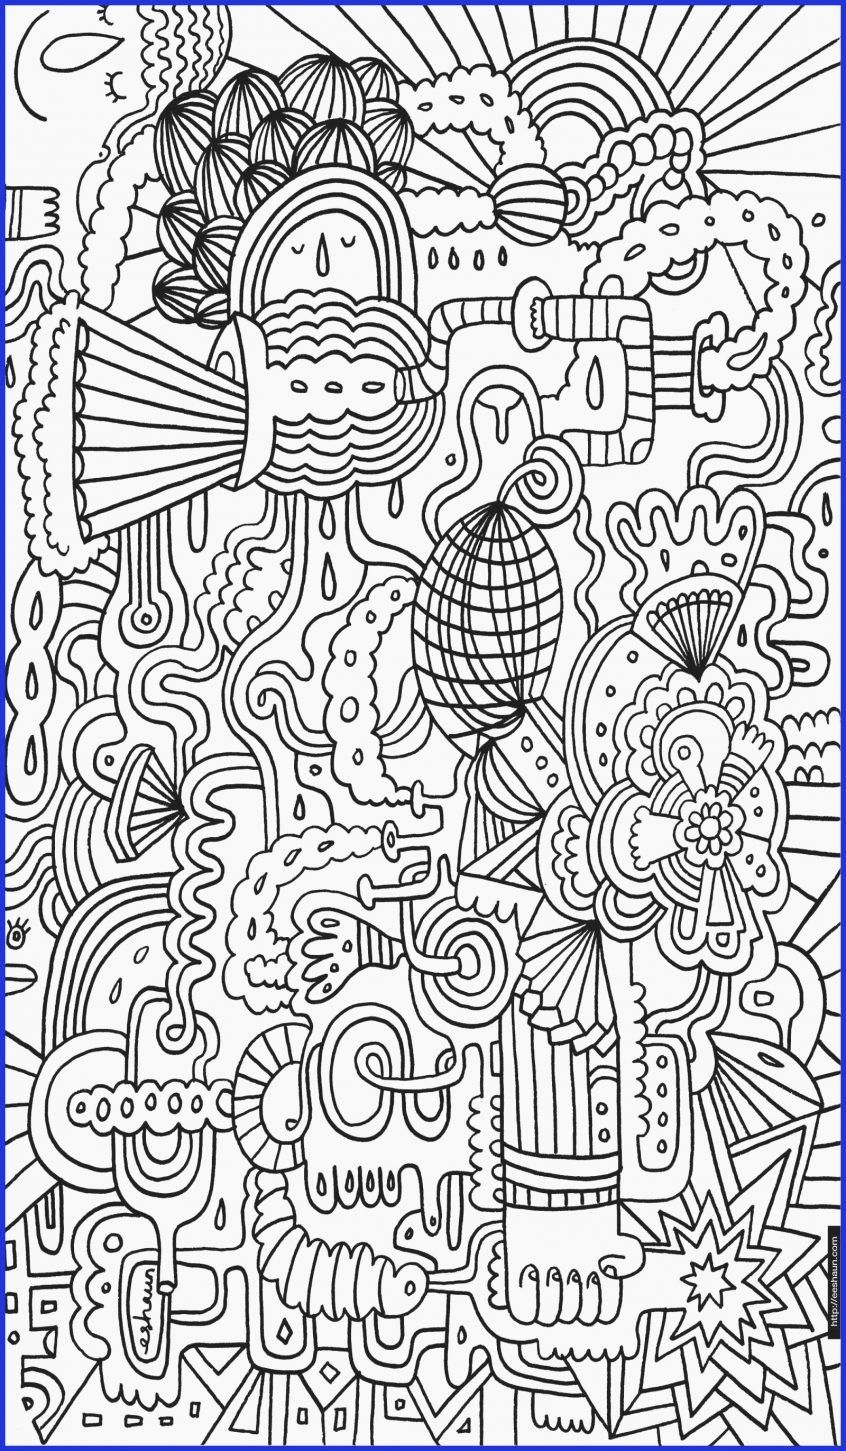 Color By Numbers Coloring Books Inspirational Coloring Difficult Color By Number Printables Cute Girl Doodle Sketsa Stiker